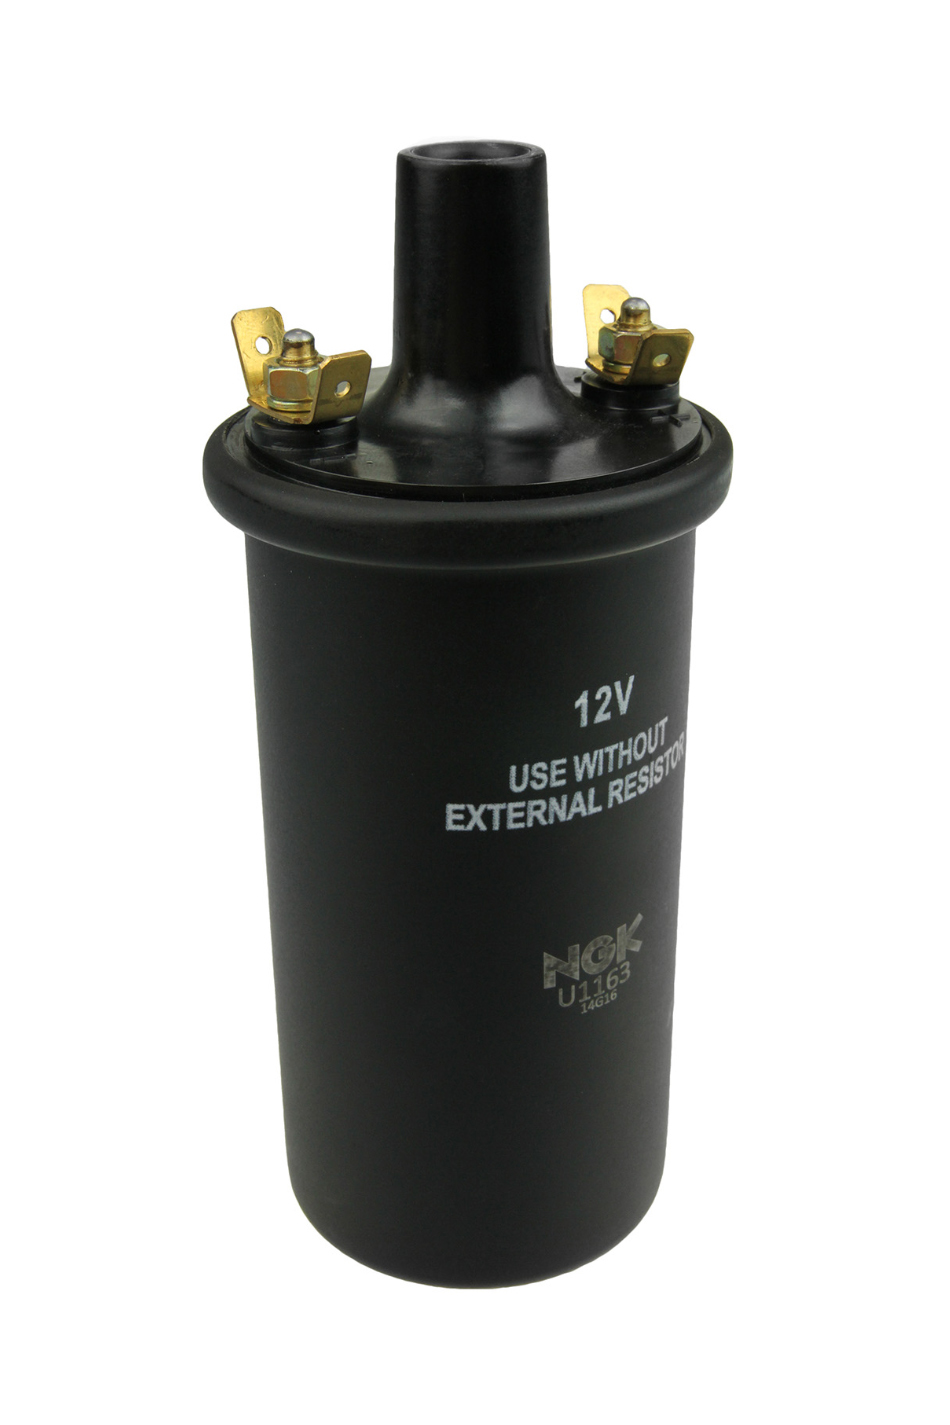 NGK U1163 Ignition Coil, Oil Filled Canister, OE Specs, 4 Male Blade Terminal, 12 VDC, Standard Ignition, Black, Each